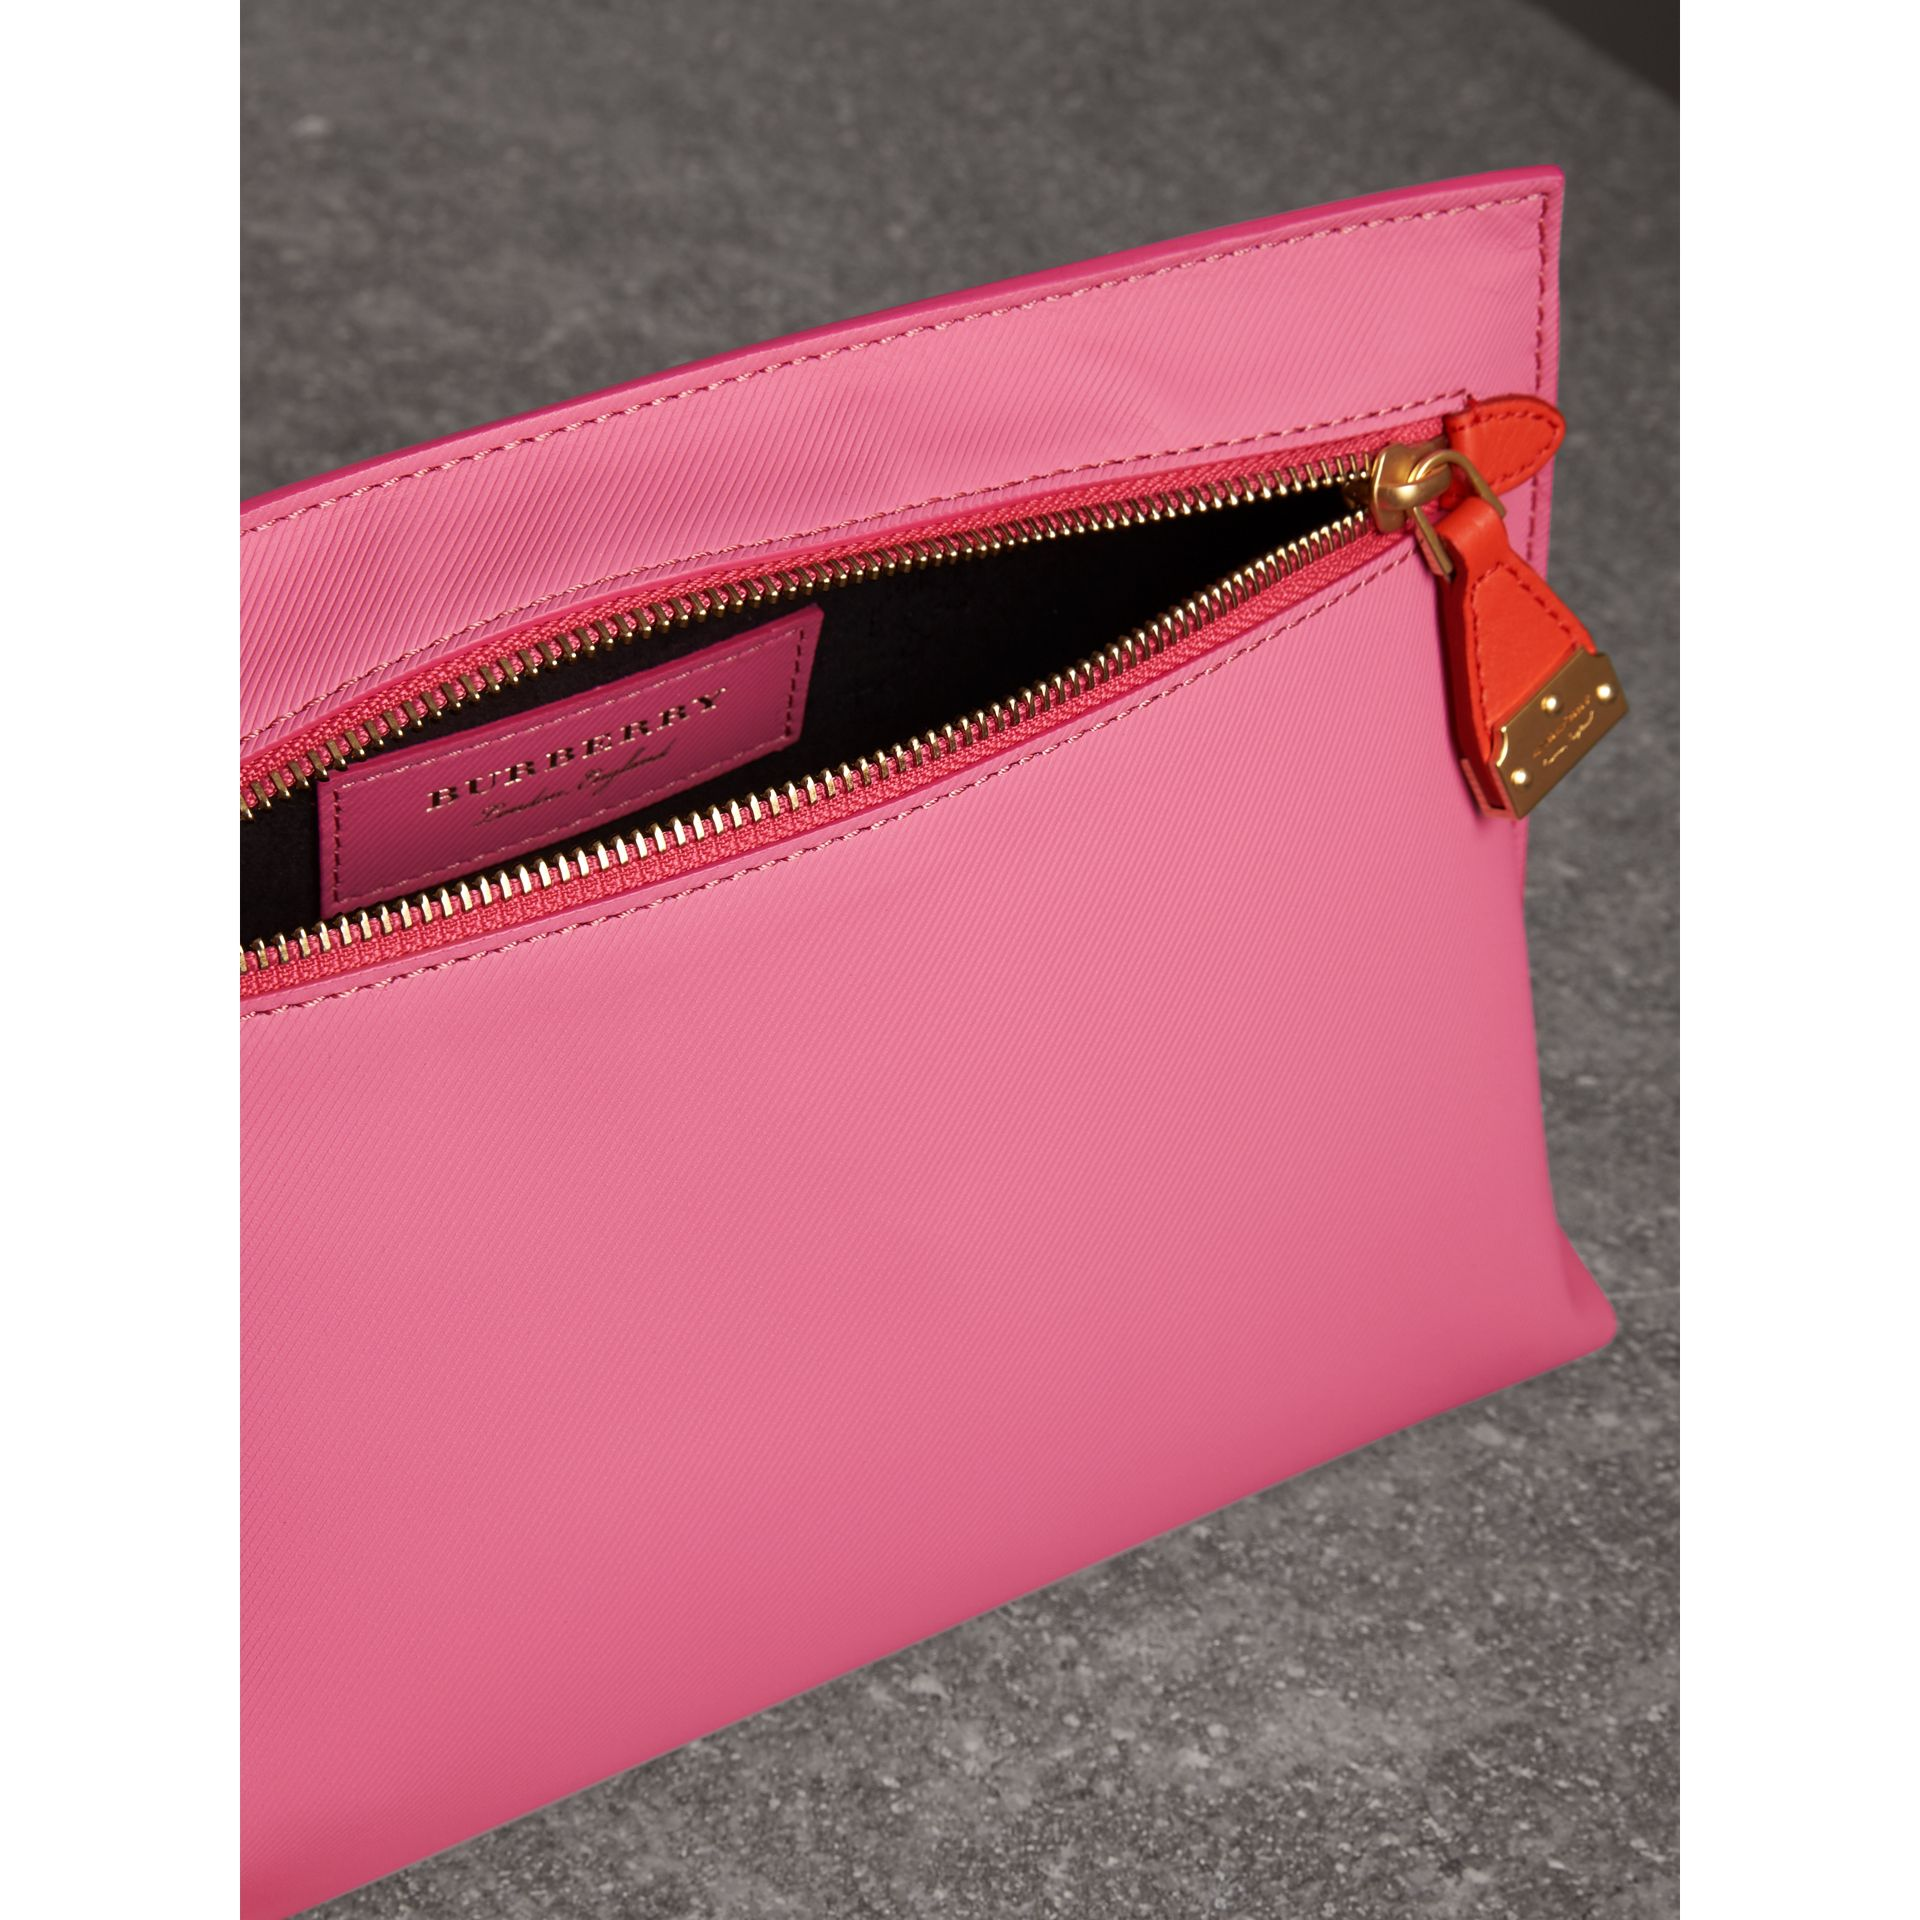 Two-tone Trench Leather Wristlet Pouch in Rose Pink - Women | Burberry - gallery image 3